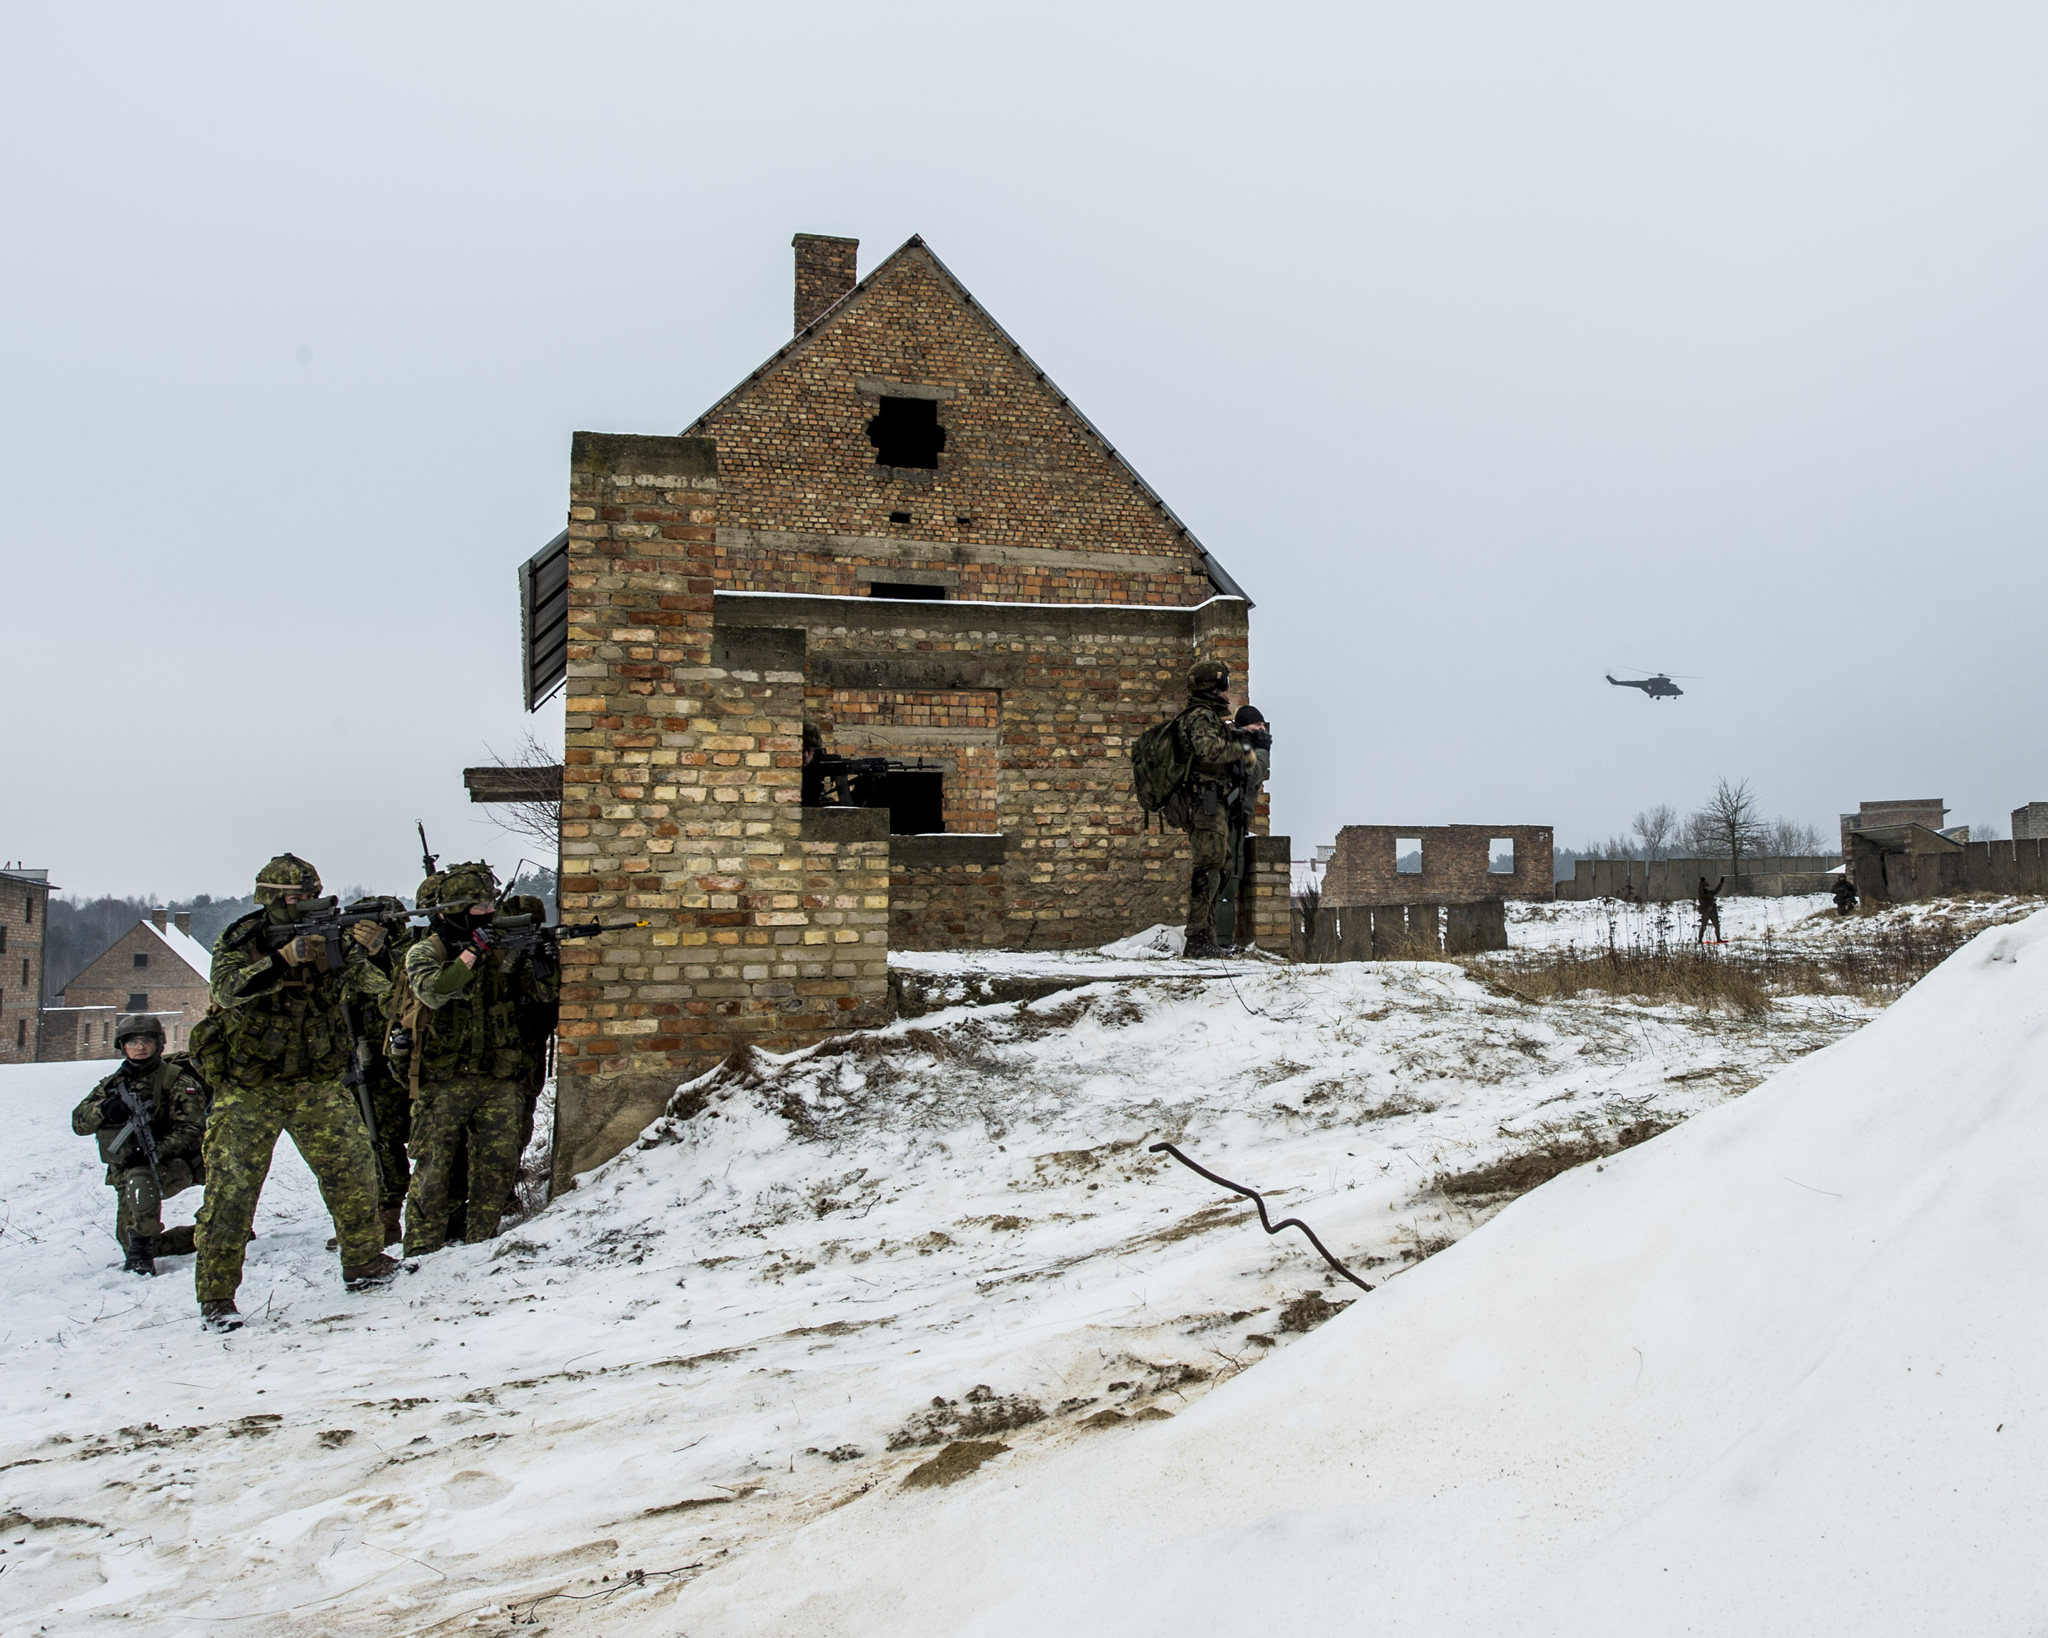 Poland. 5 February 2015 - Members of 3rd Battalion, The Royal Canadian Regiment (3 RCR) practice urban operational tactics during a simulated house clearing mission with the Polish Army from 7th Battalion.